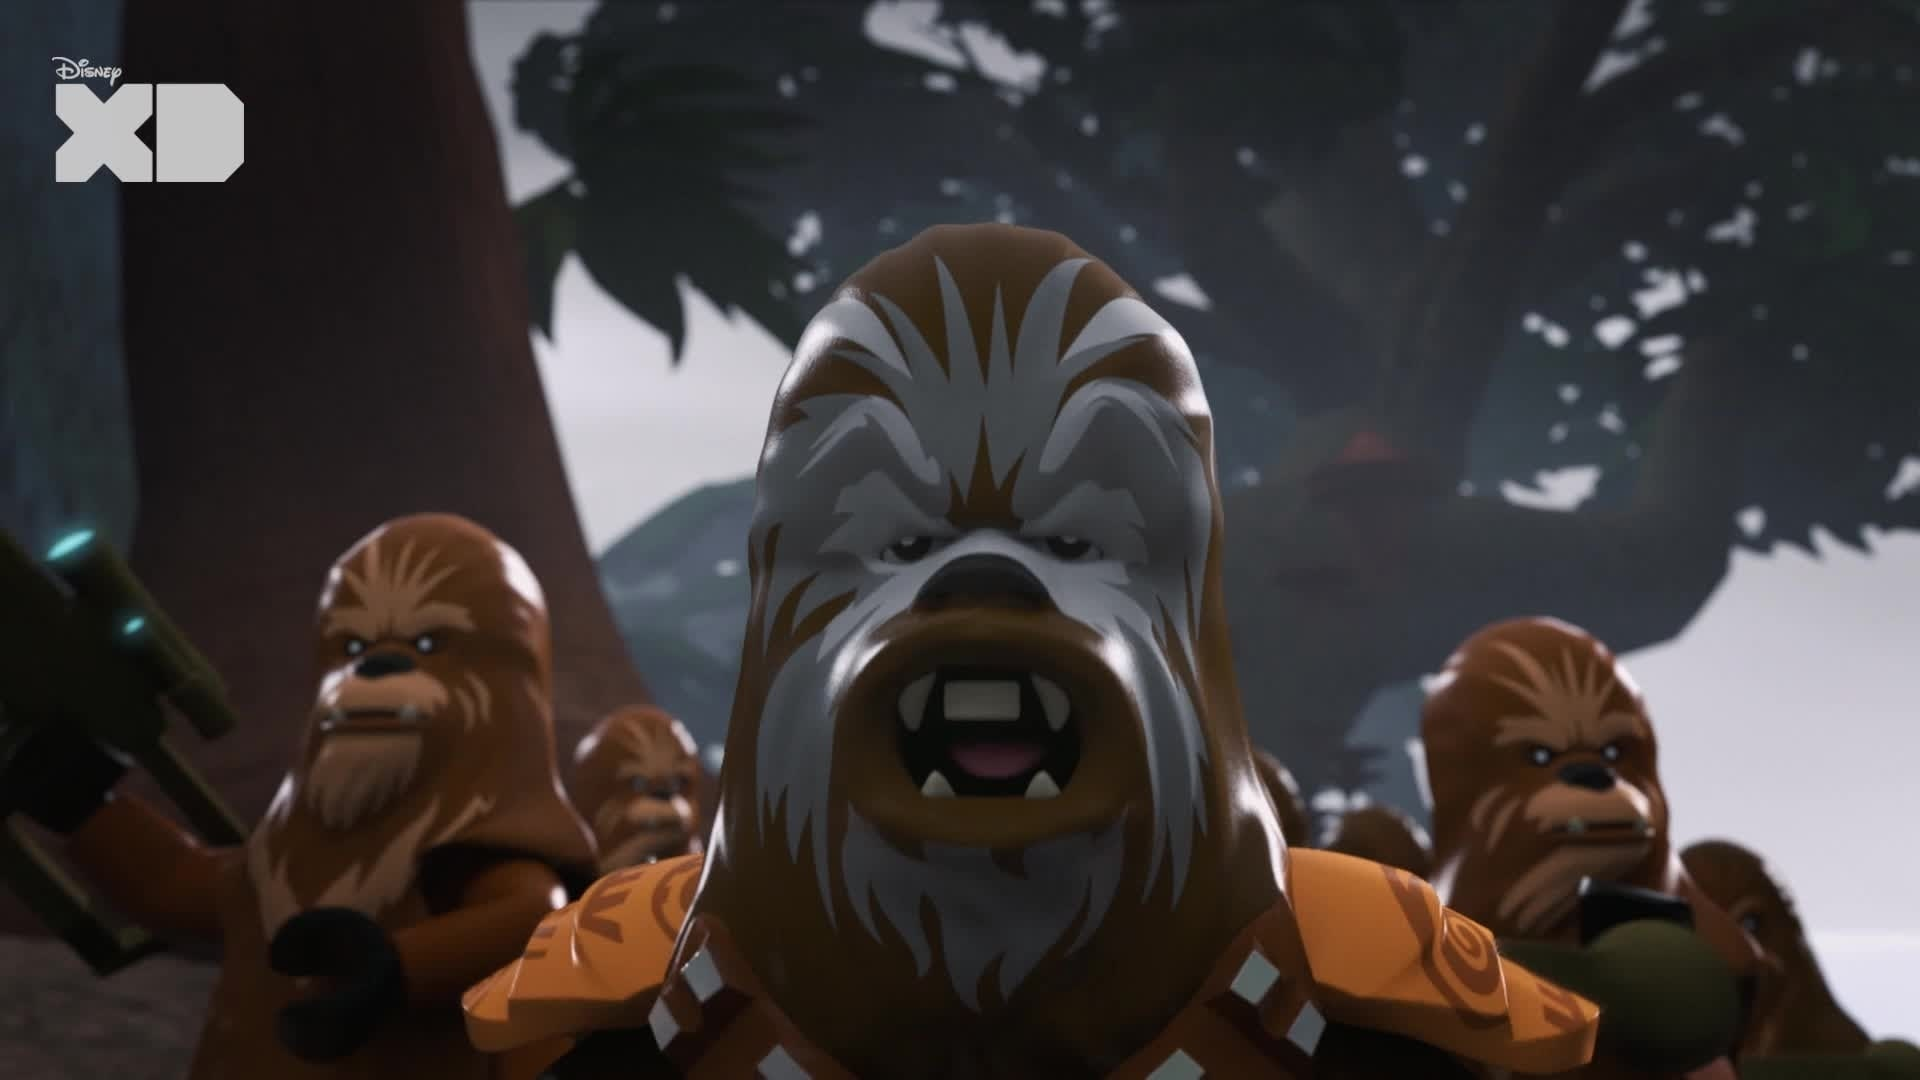 R0-GR vs. Wookiees